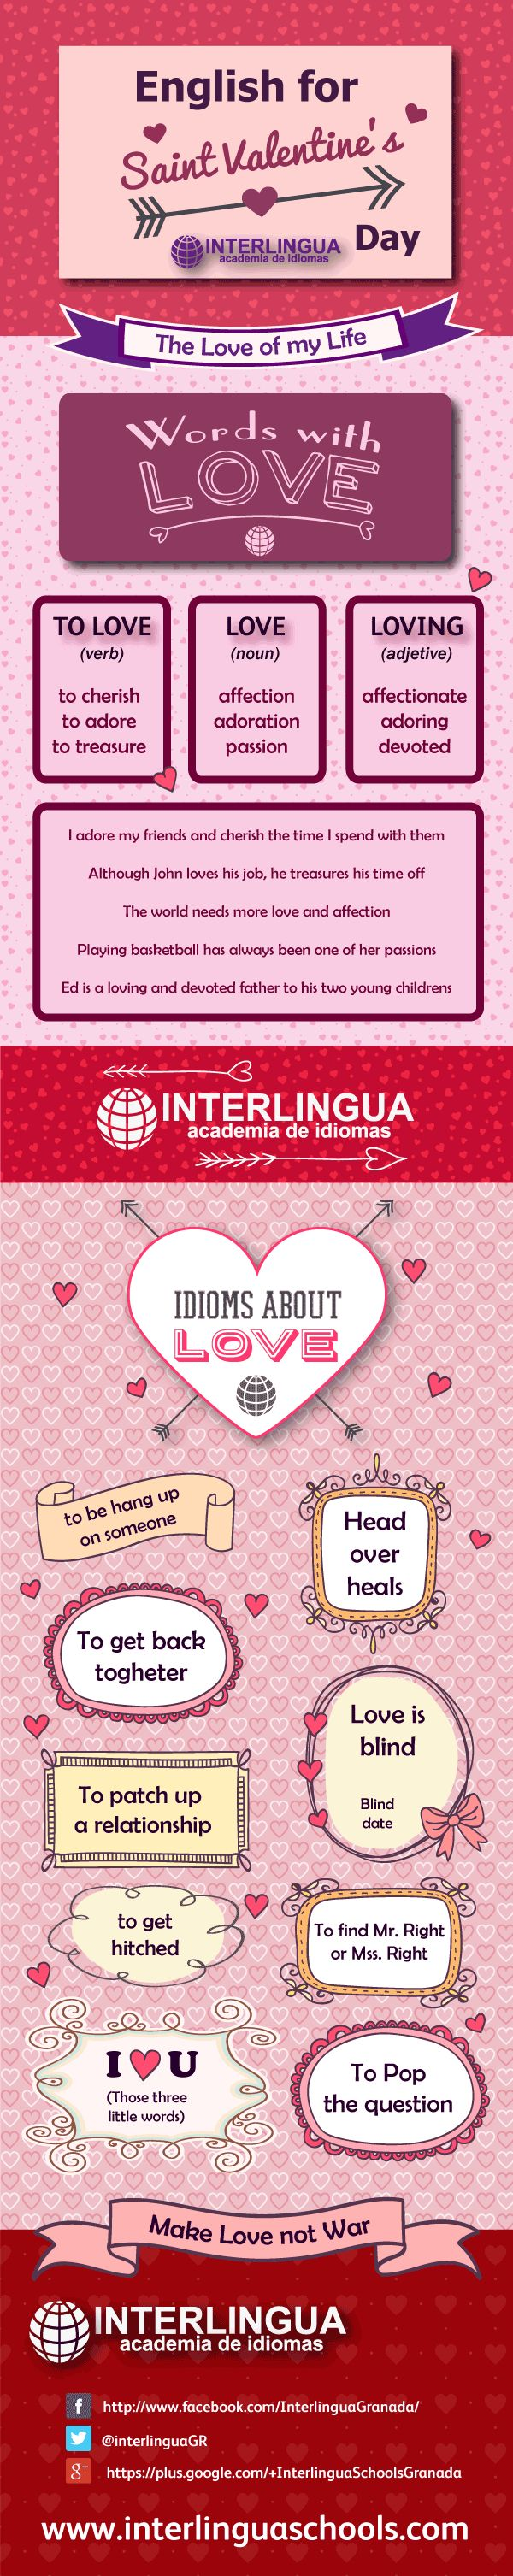 Infografía vocabulario love #infographic #english #ingles #SanValentinesday #SanValentin